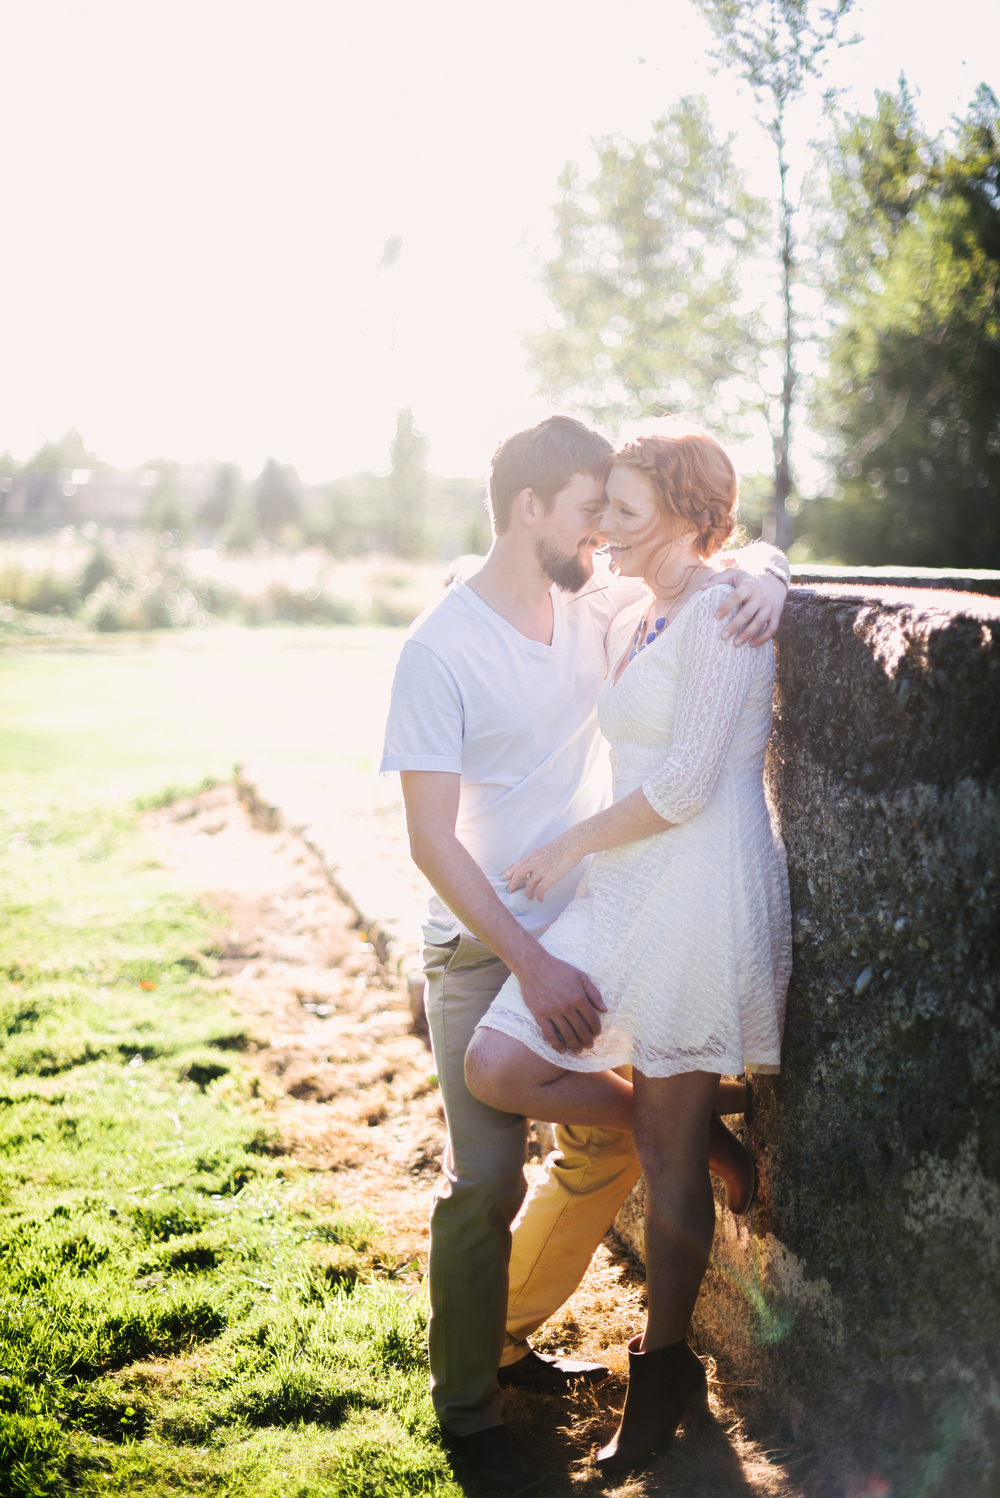 22-edgefield_engagement_fashion_photography_christa_taylor-100.jpg